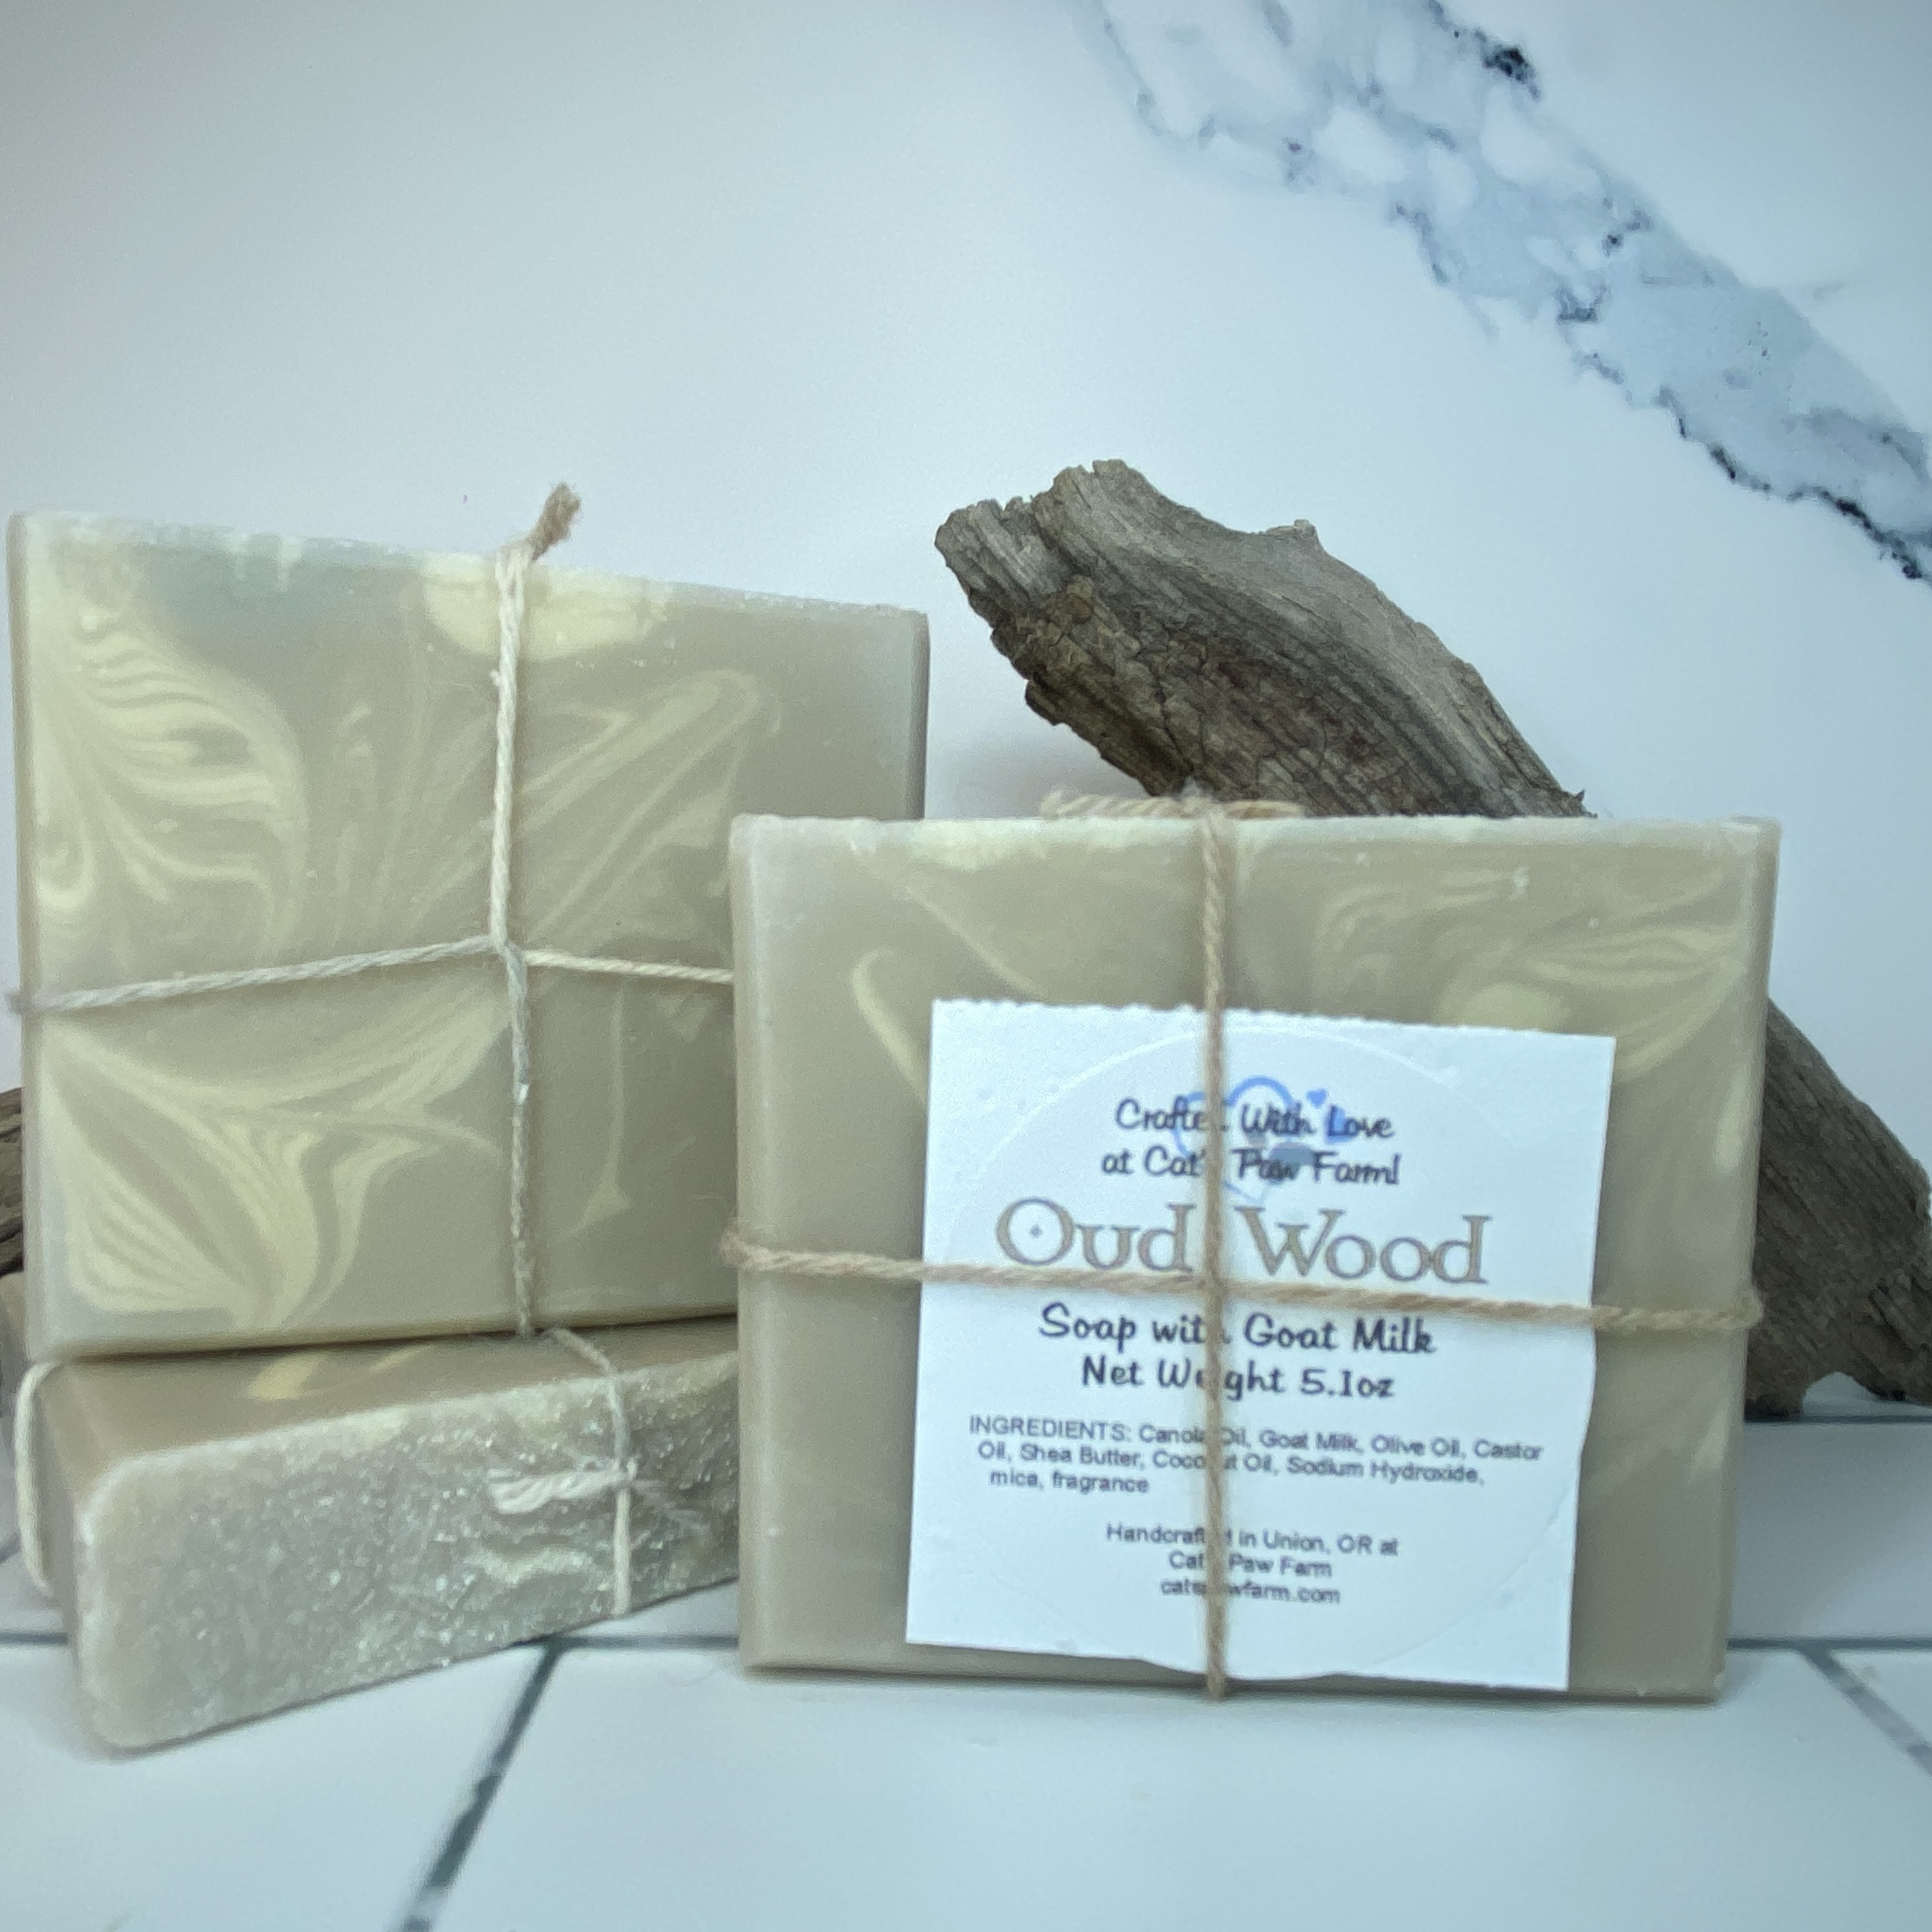 Oud Wood Scented Soap with Goat Milk